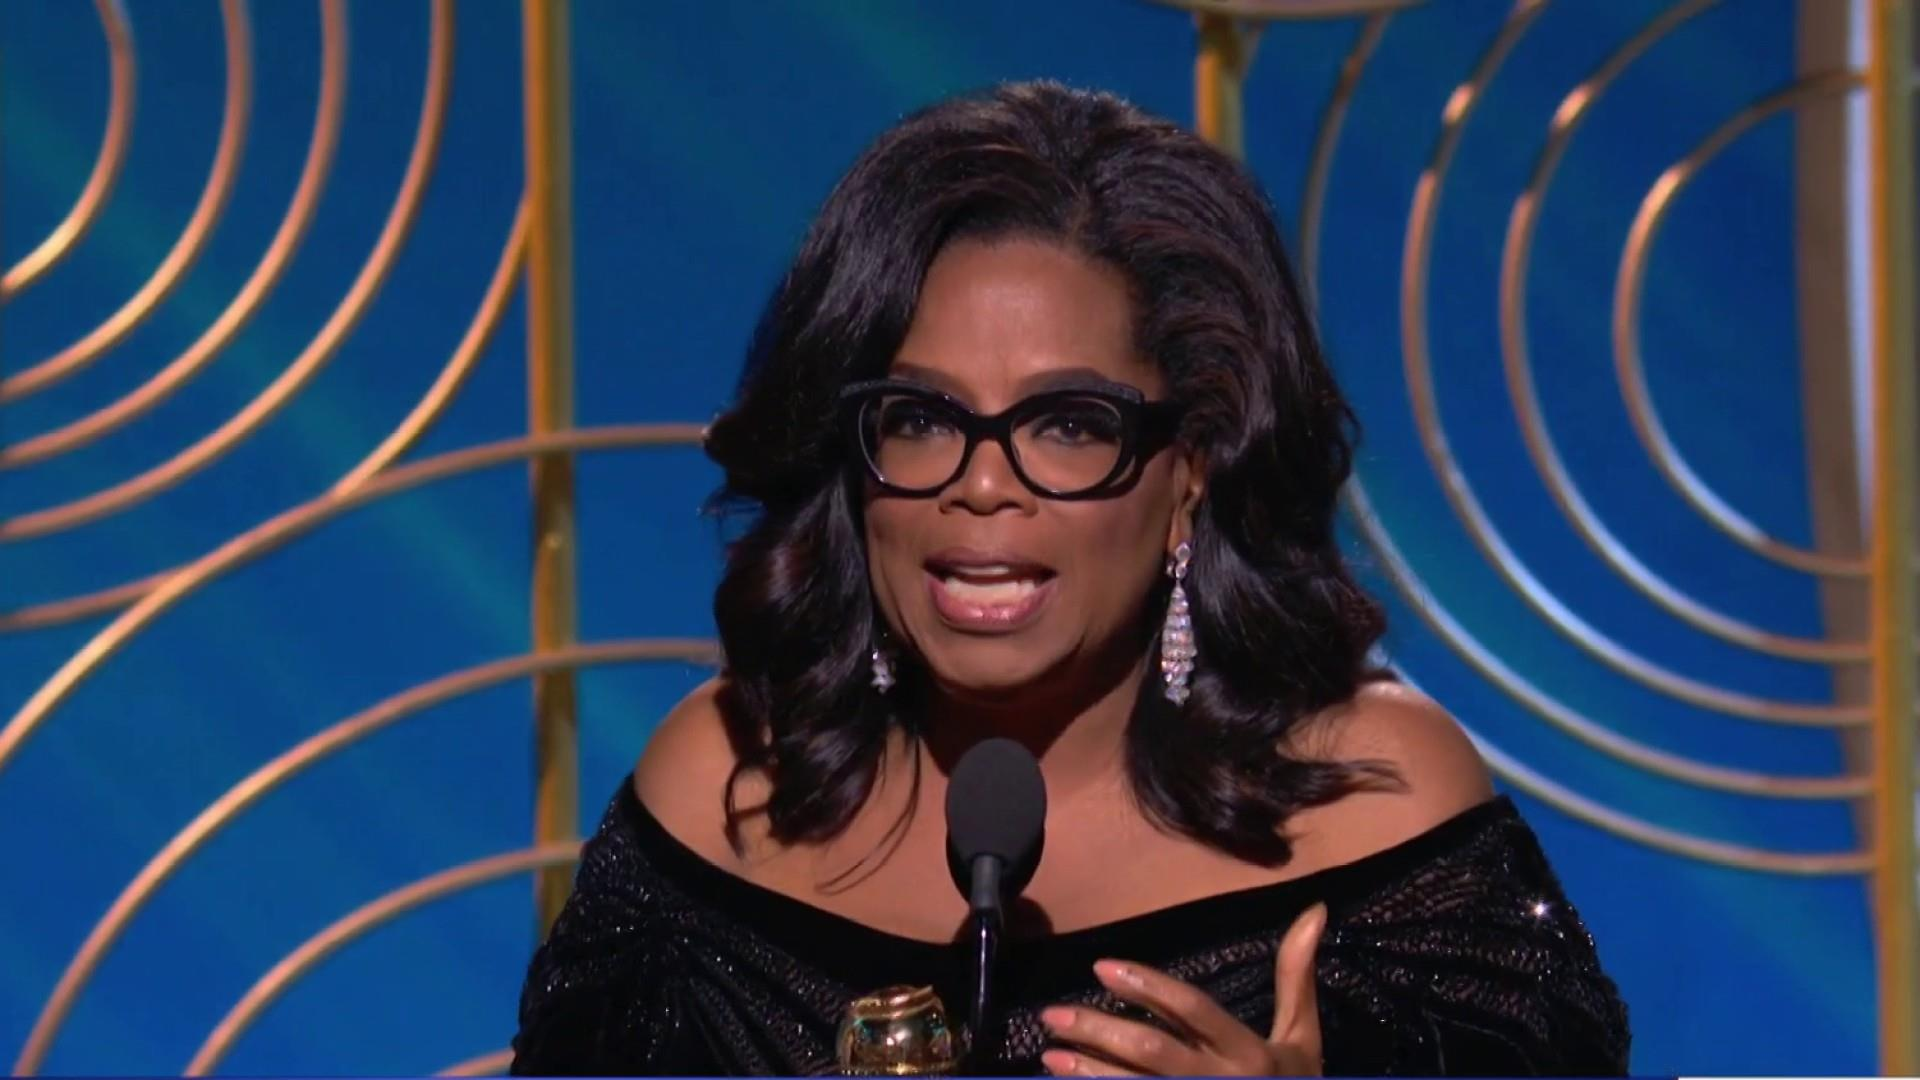 Oprah Winfrey for president? Democrats are considering it